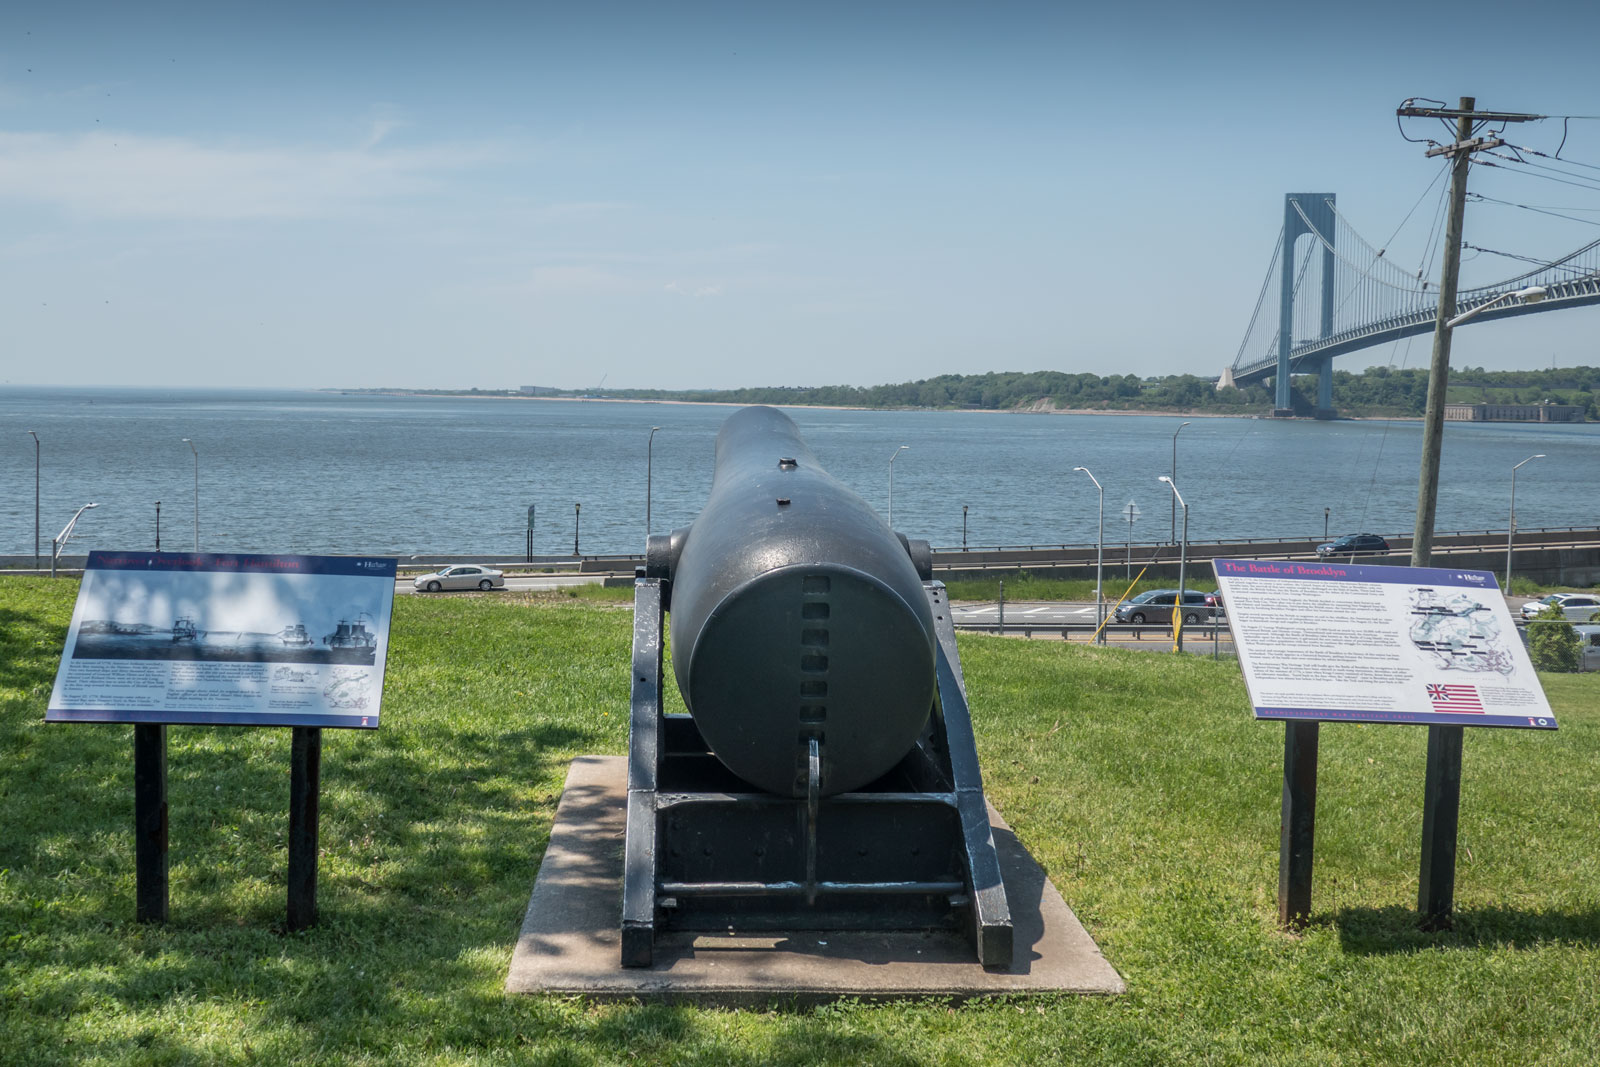 Cannon Verranzano Bridge and New York Harbor Defense Museum Fort Hamilton Brooklyn